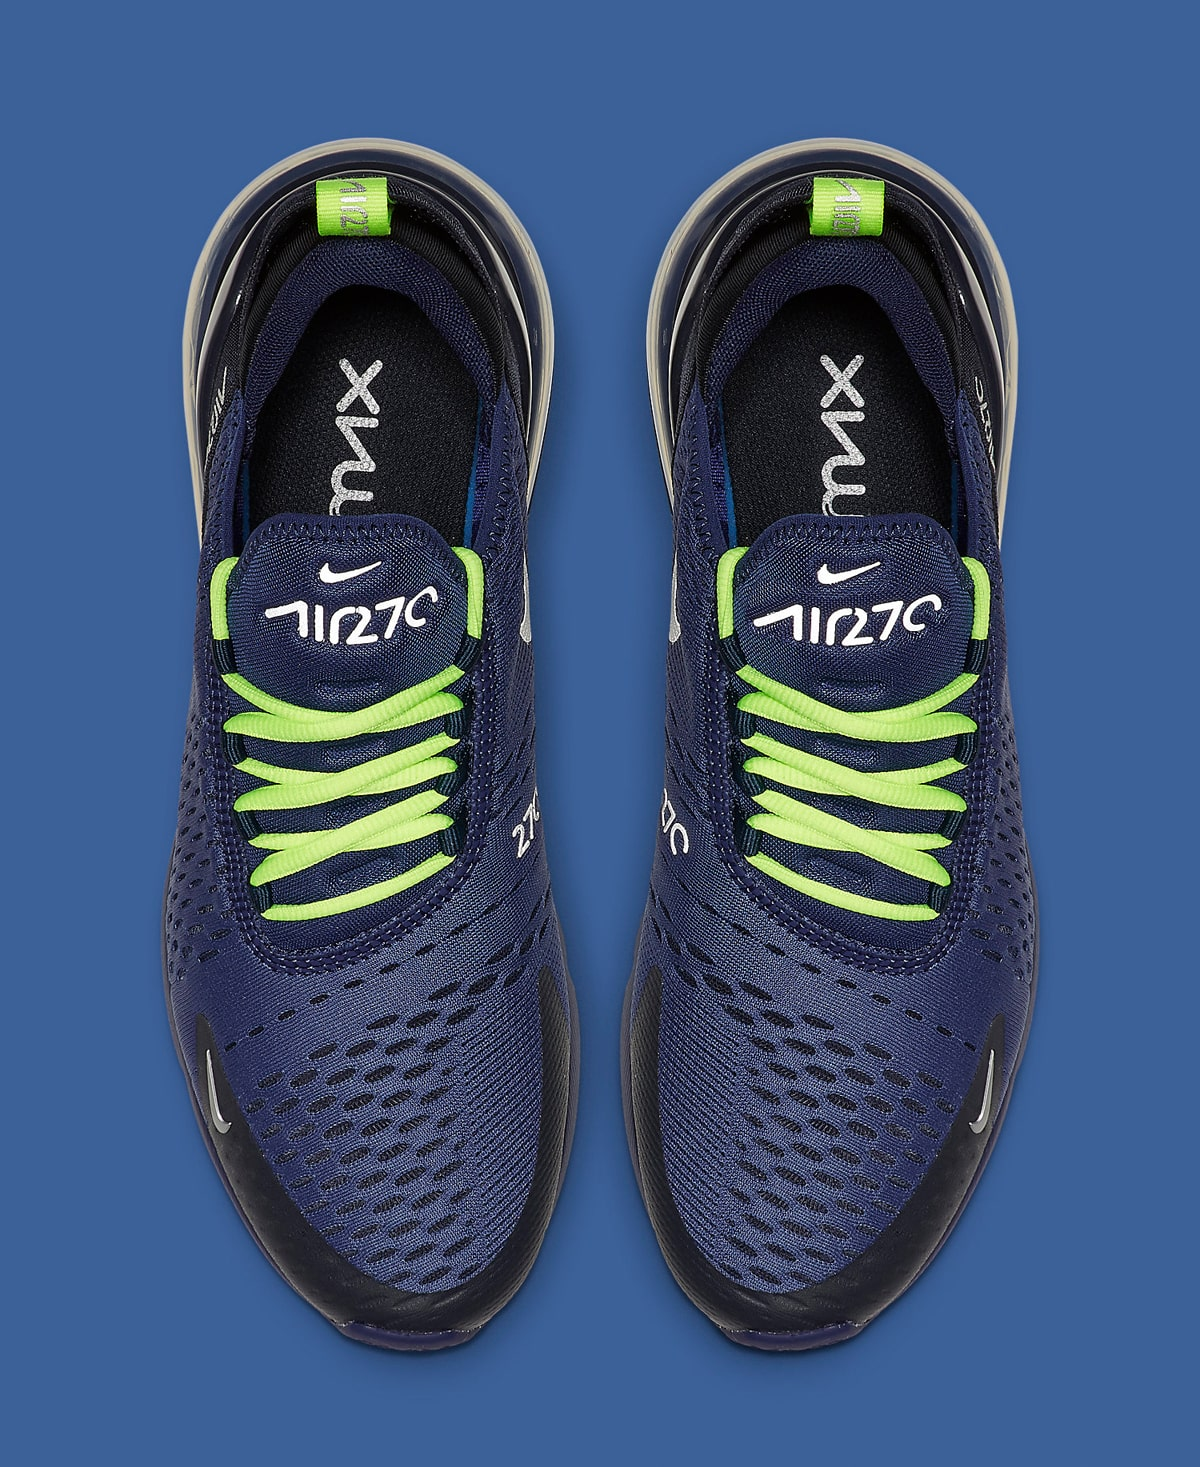 This Air Max 270 is Made for Seattle Seahawks Supporters